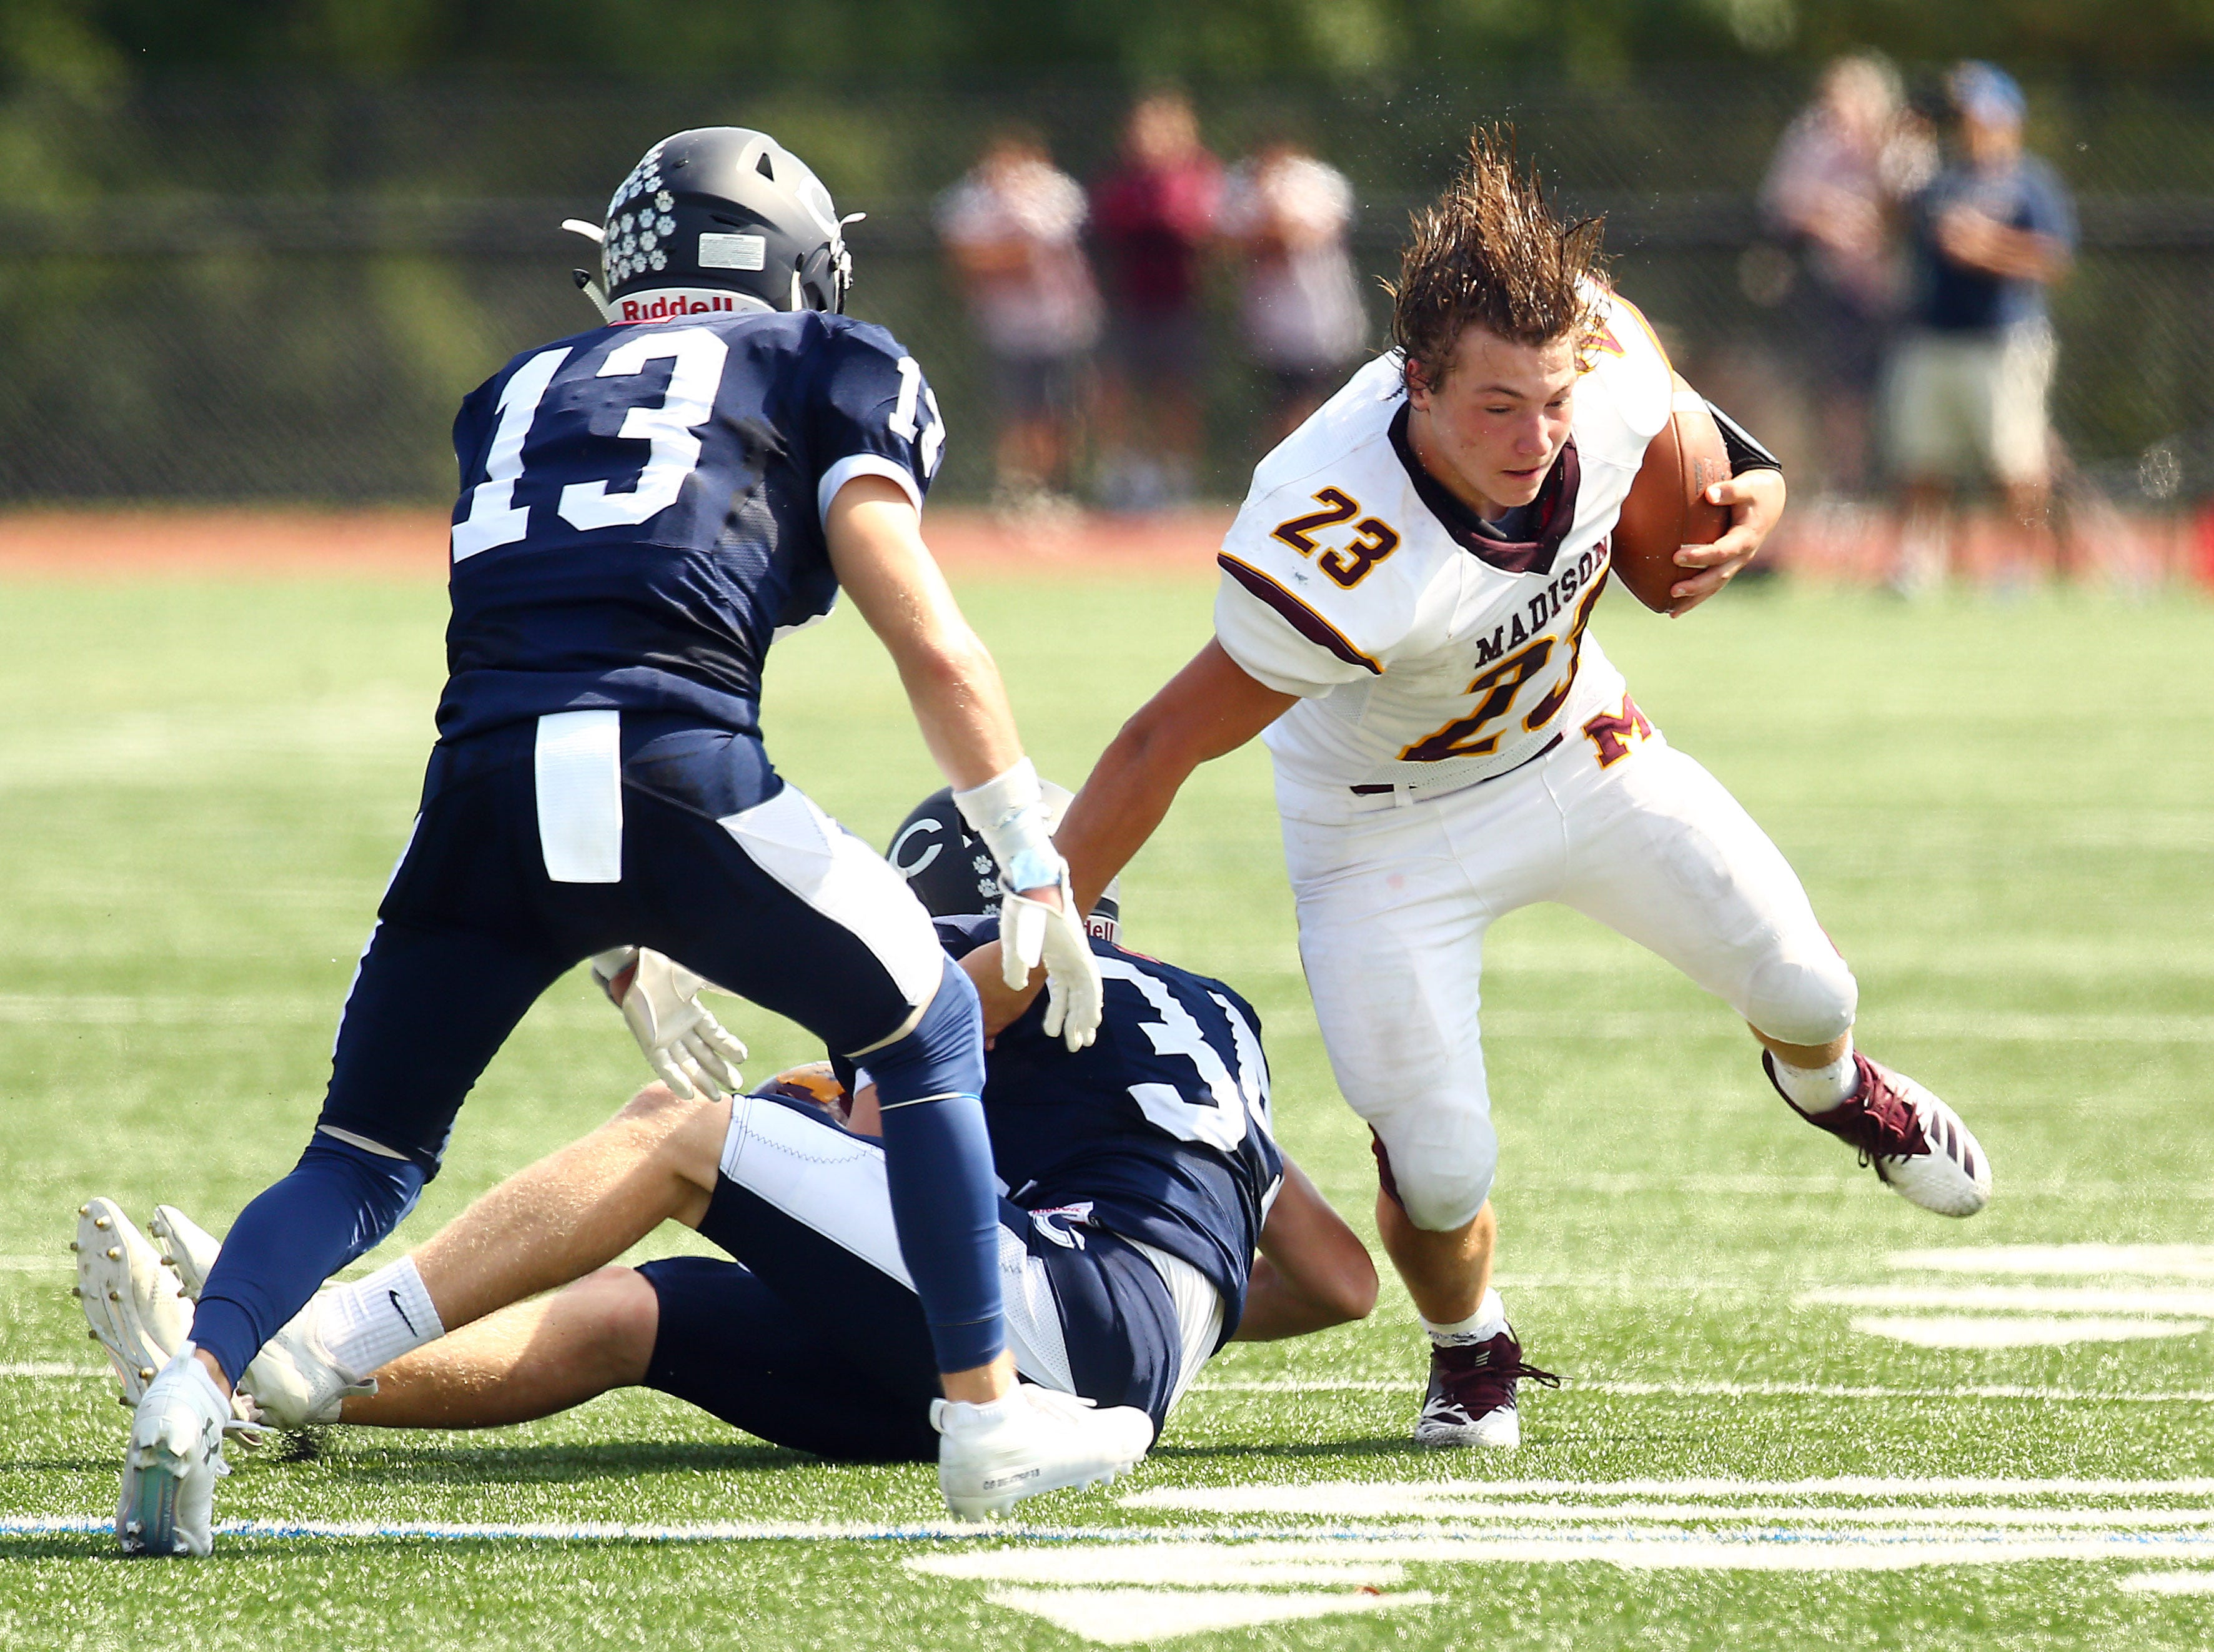 Madison running back Austin Schmitz breaks a tackle, losing his helmet to Chatham's James Ehler during their SFC American White Saturday football game. September 29, 2018, Chatham, NJ